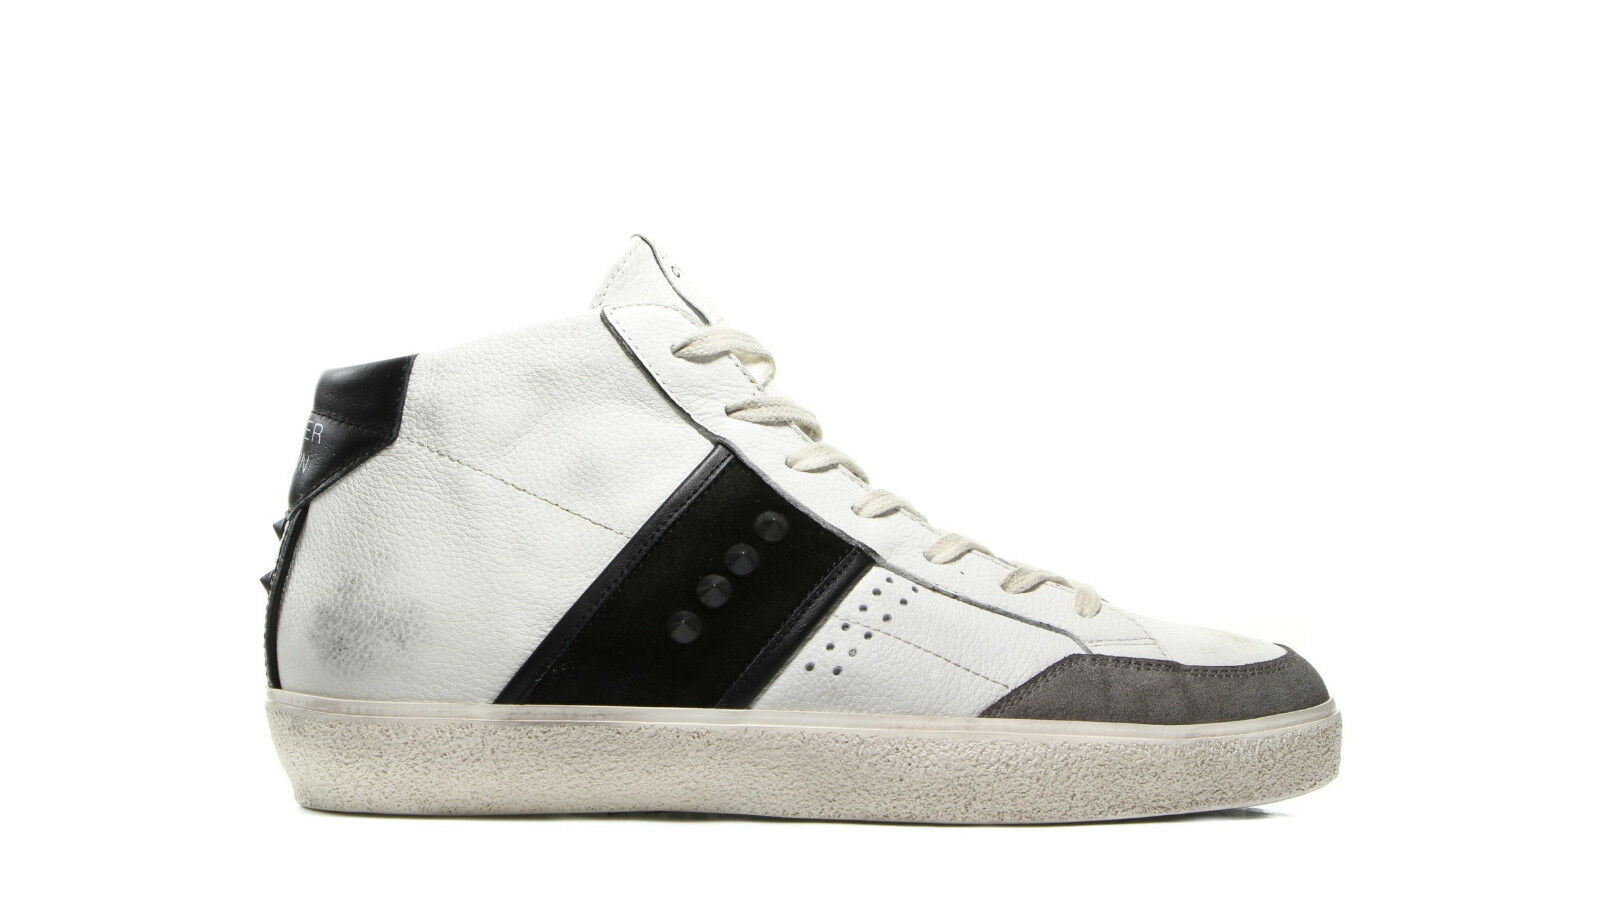 LEATHER CROWN SNEAKER UOMO  MLC177 IN PELLE BIANCA WINTER 2017 -30% !!!!!